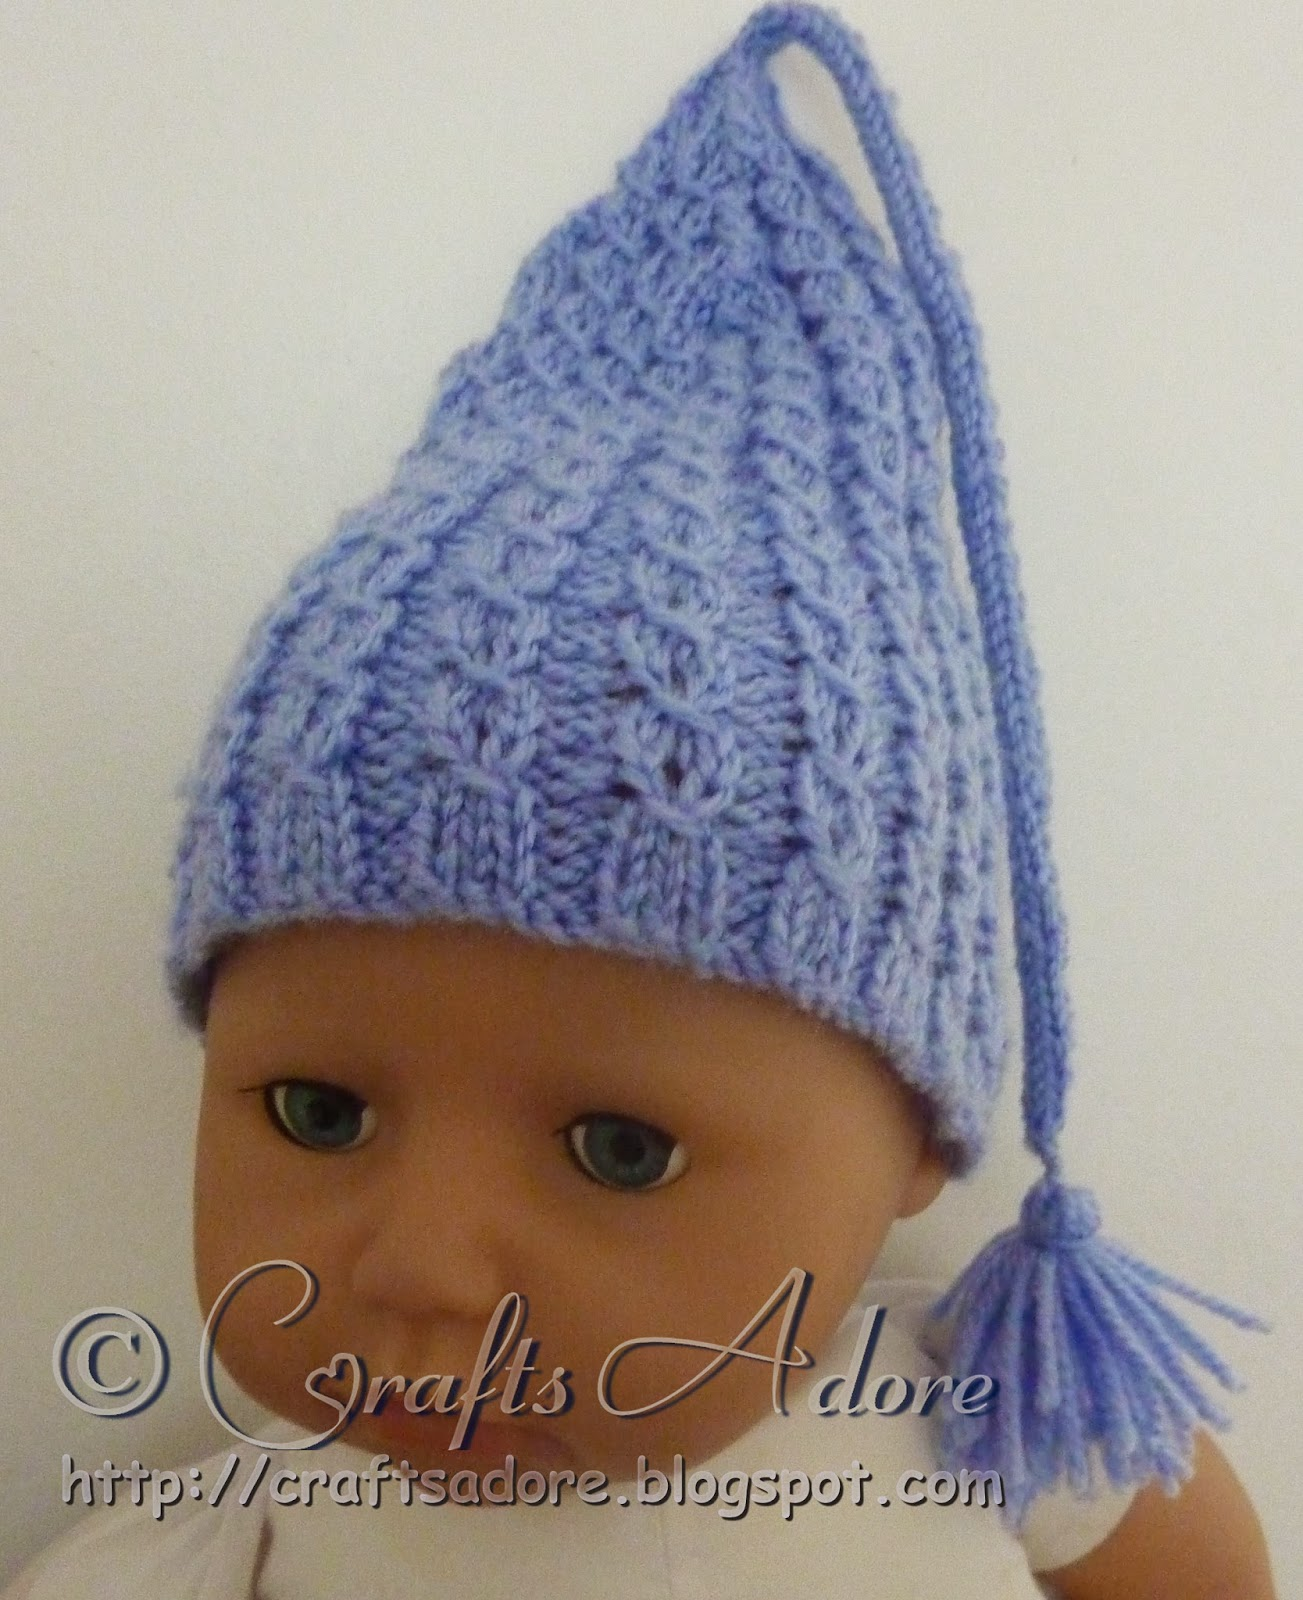 CraftsAdore: Knitted Baby Hat - Incredible Expanding Gnome Cap